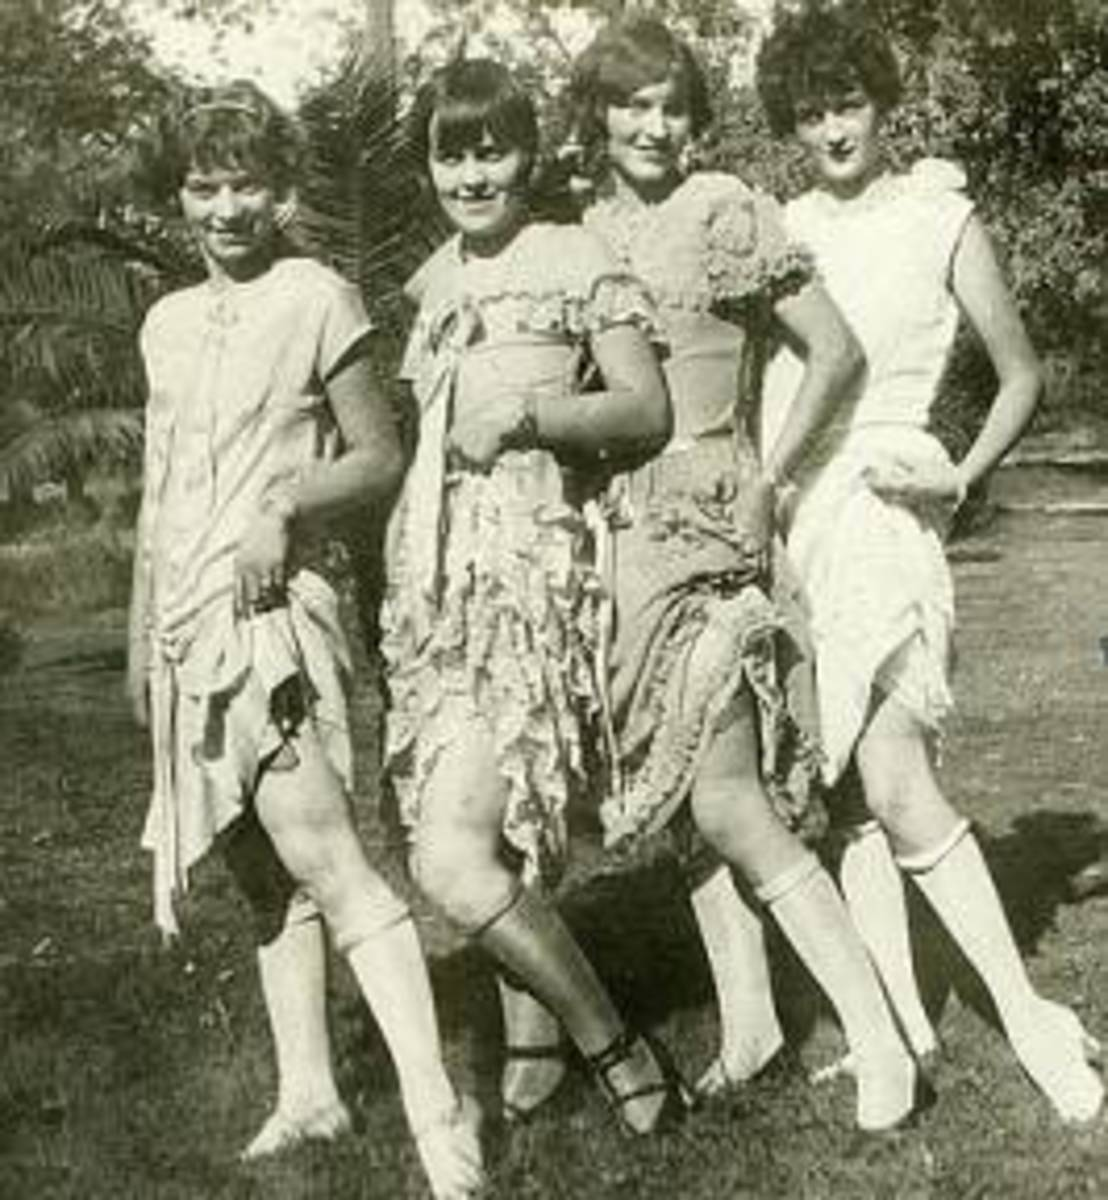 Four young ladies in the Roaring 20s